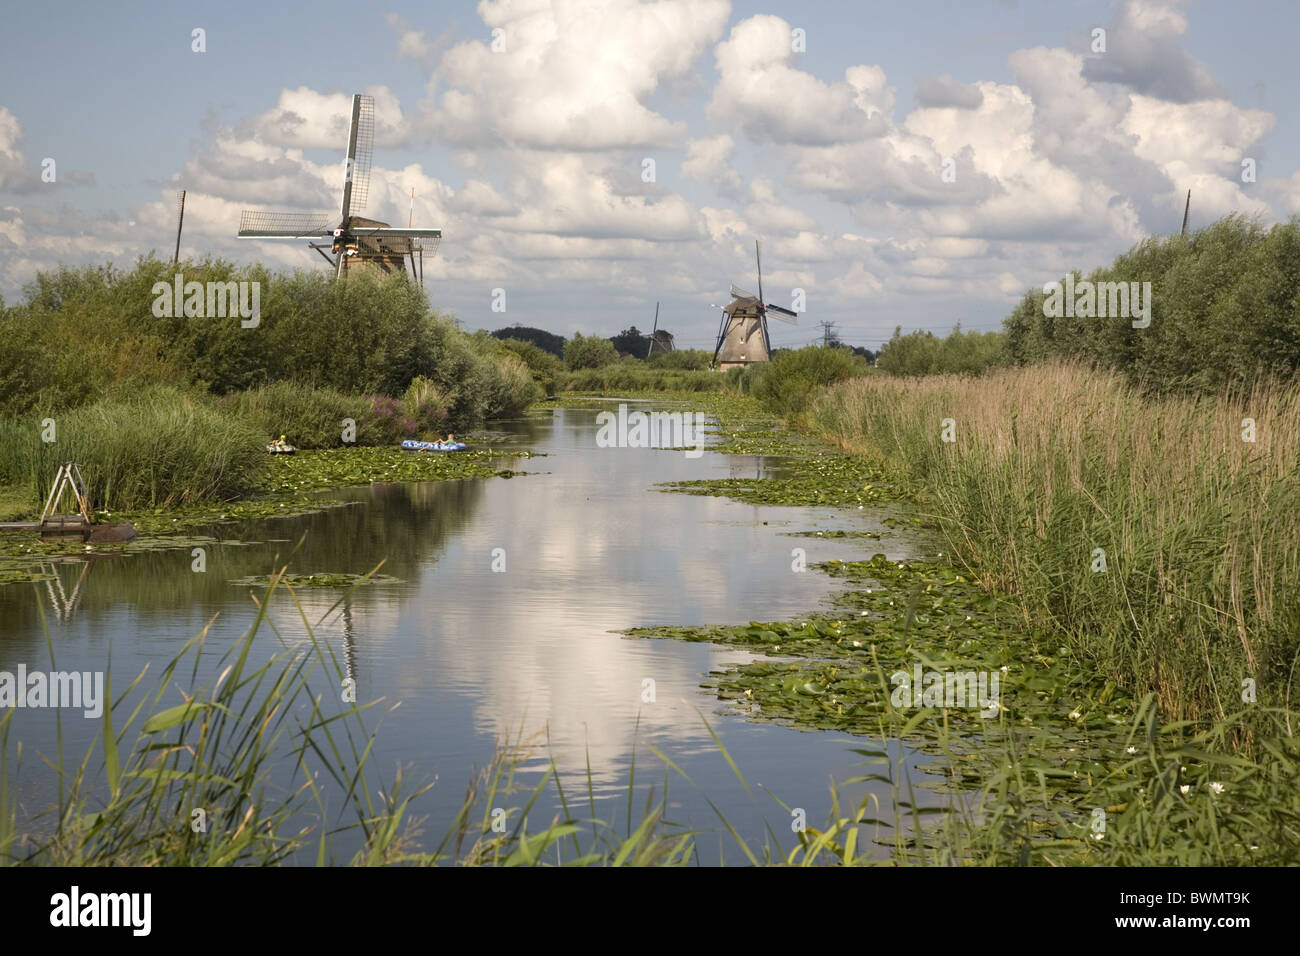 Windmills of the Unesco World Heritage Site Kinderdijk, Zuid-Holland (South-Holland), Netherlands - Stock Image